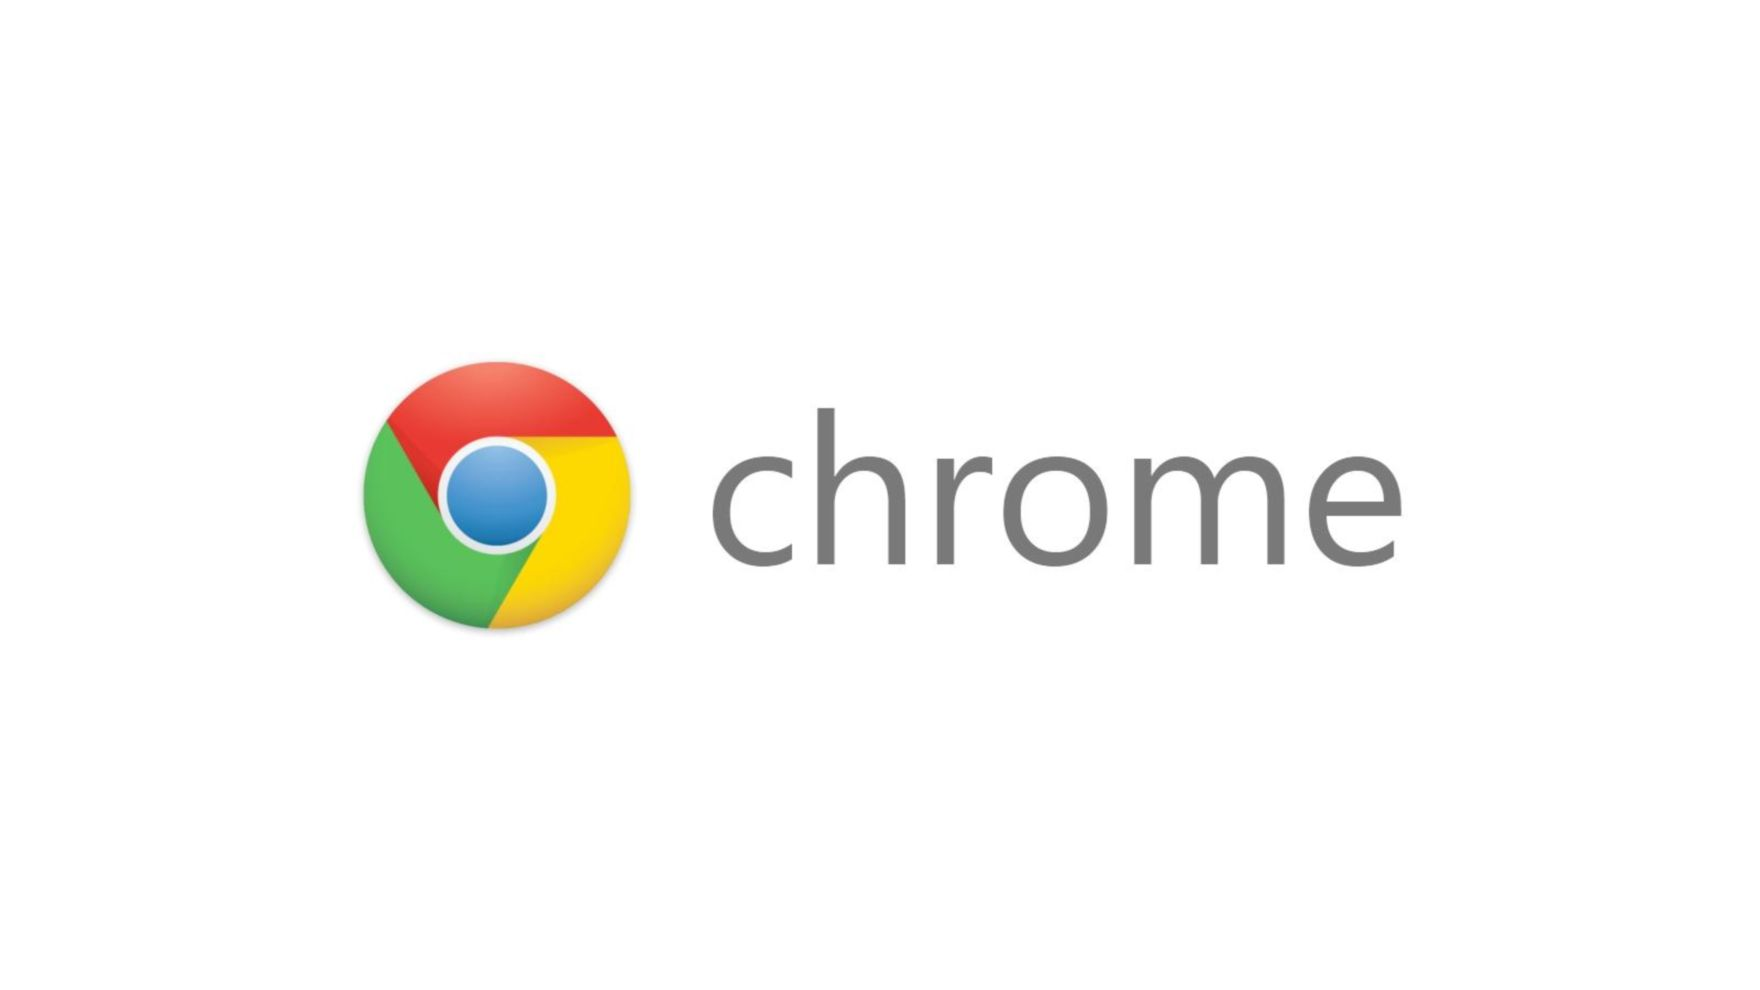 google chrome logo 1920x1080 wallpaper desktop hd. Black Bedroom Furniture Sets. Home Design Ideas